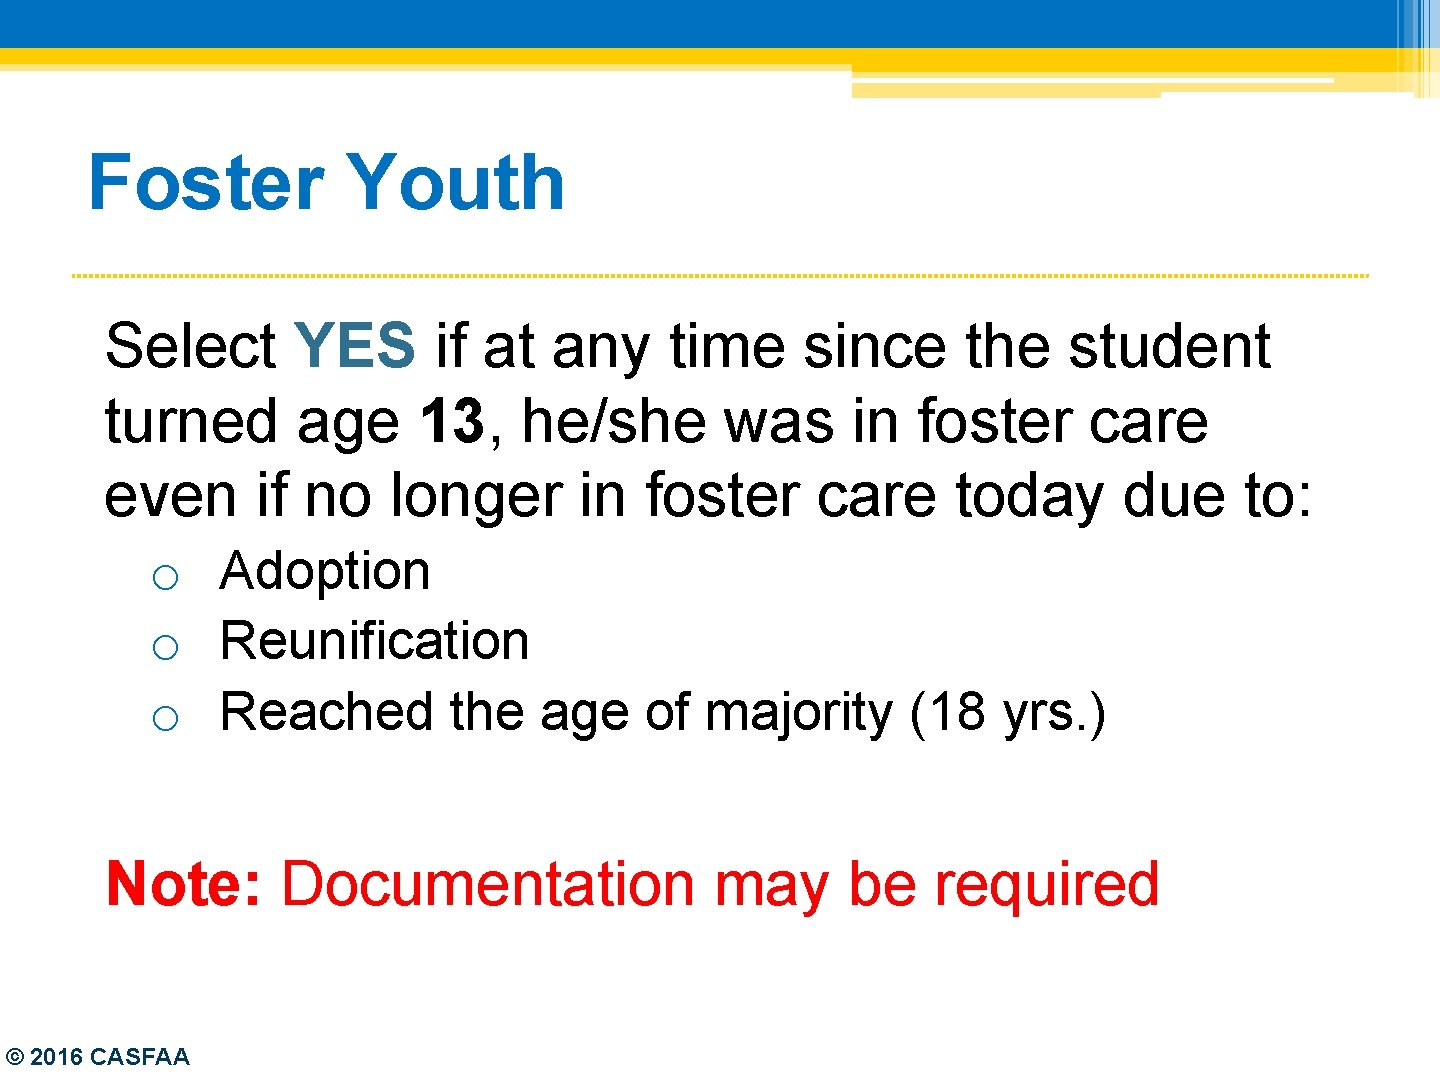 Foster Youth Select YES if at any time since the student turned age 13,